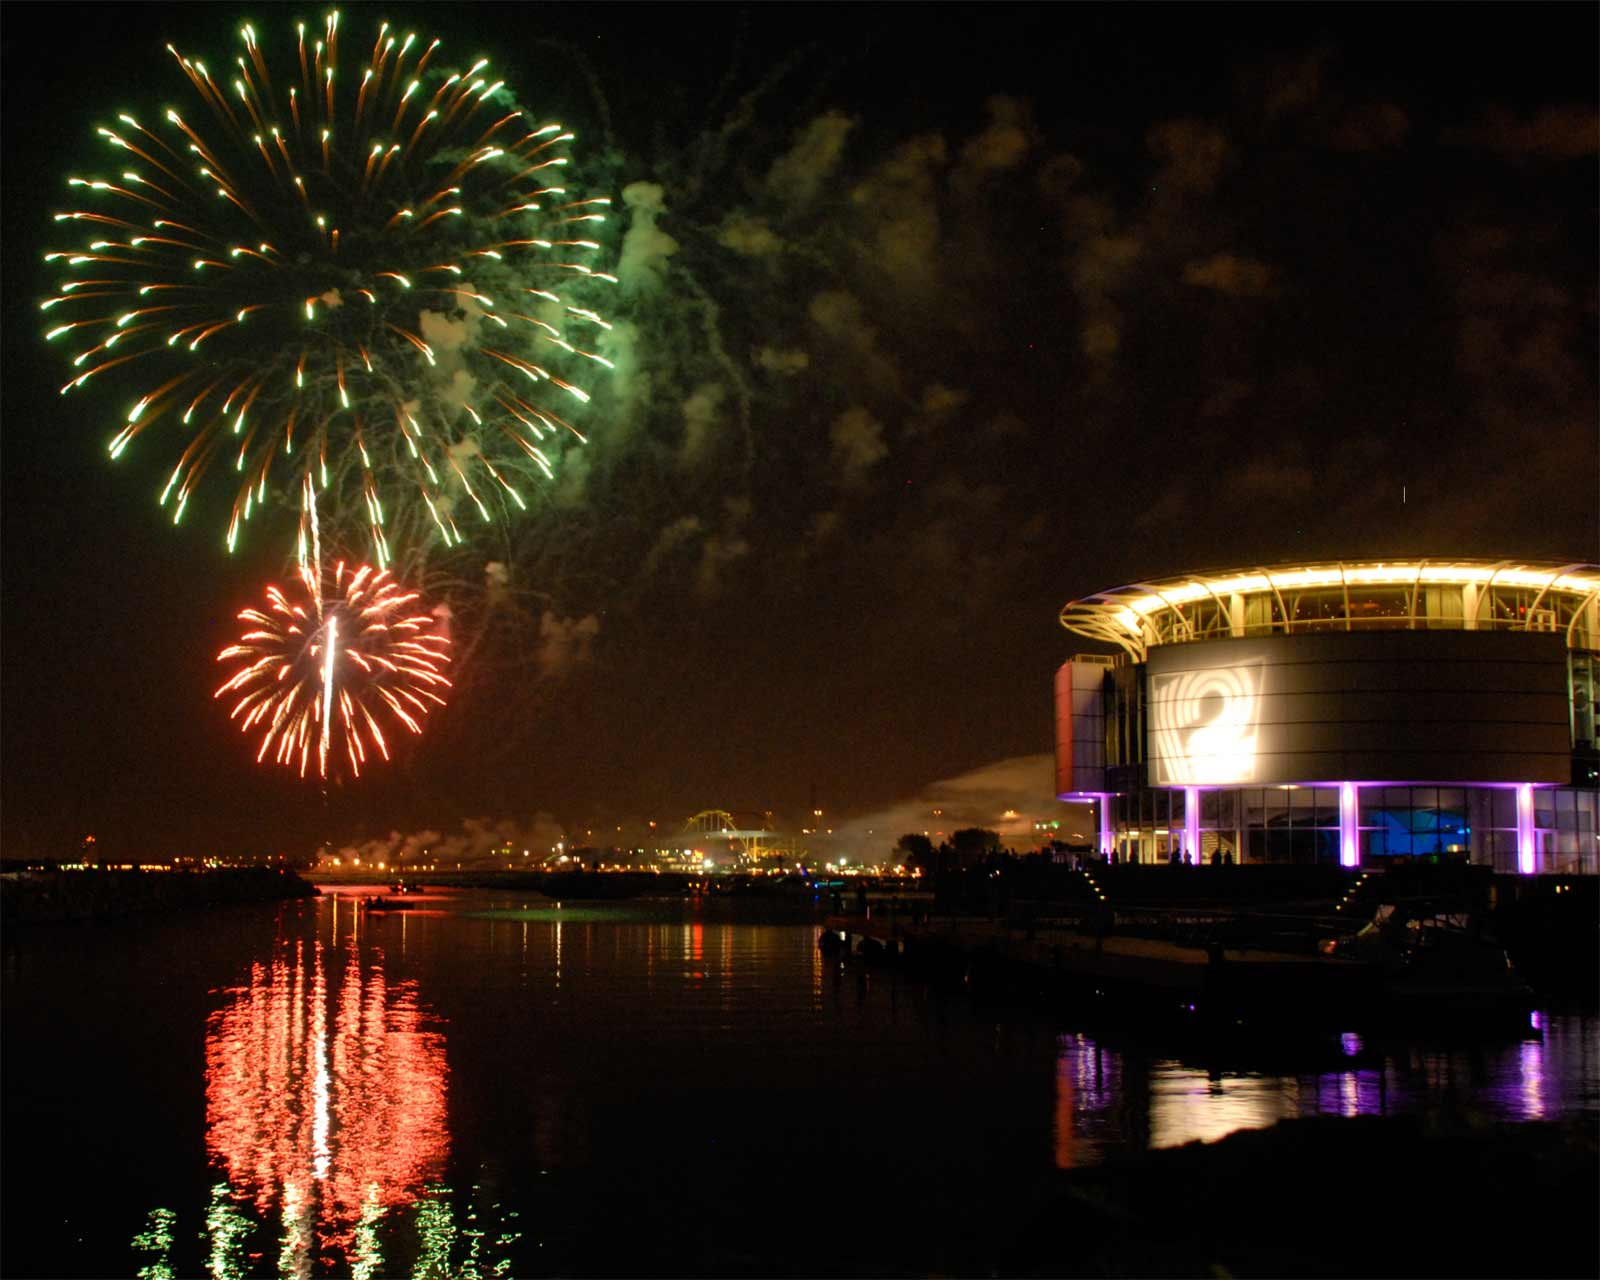 Milwaukee Discovery World Museum at night with Fireworks Selep Imaging